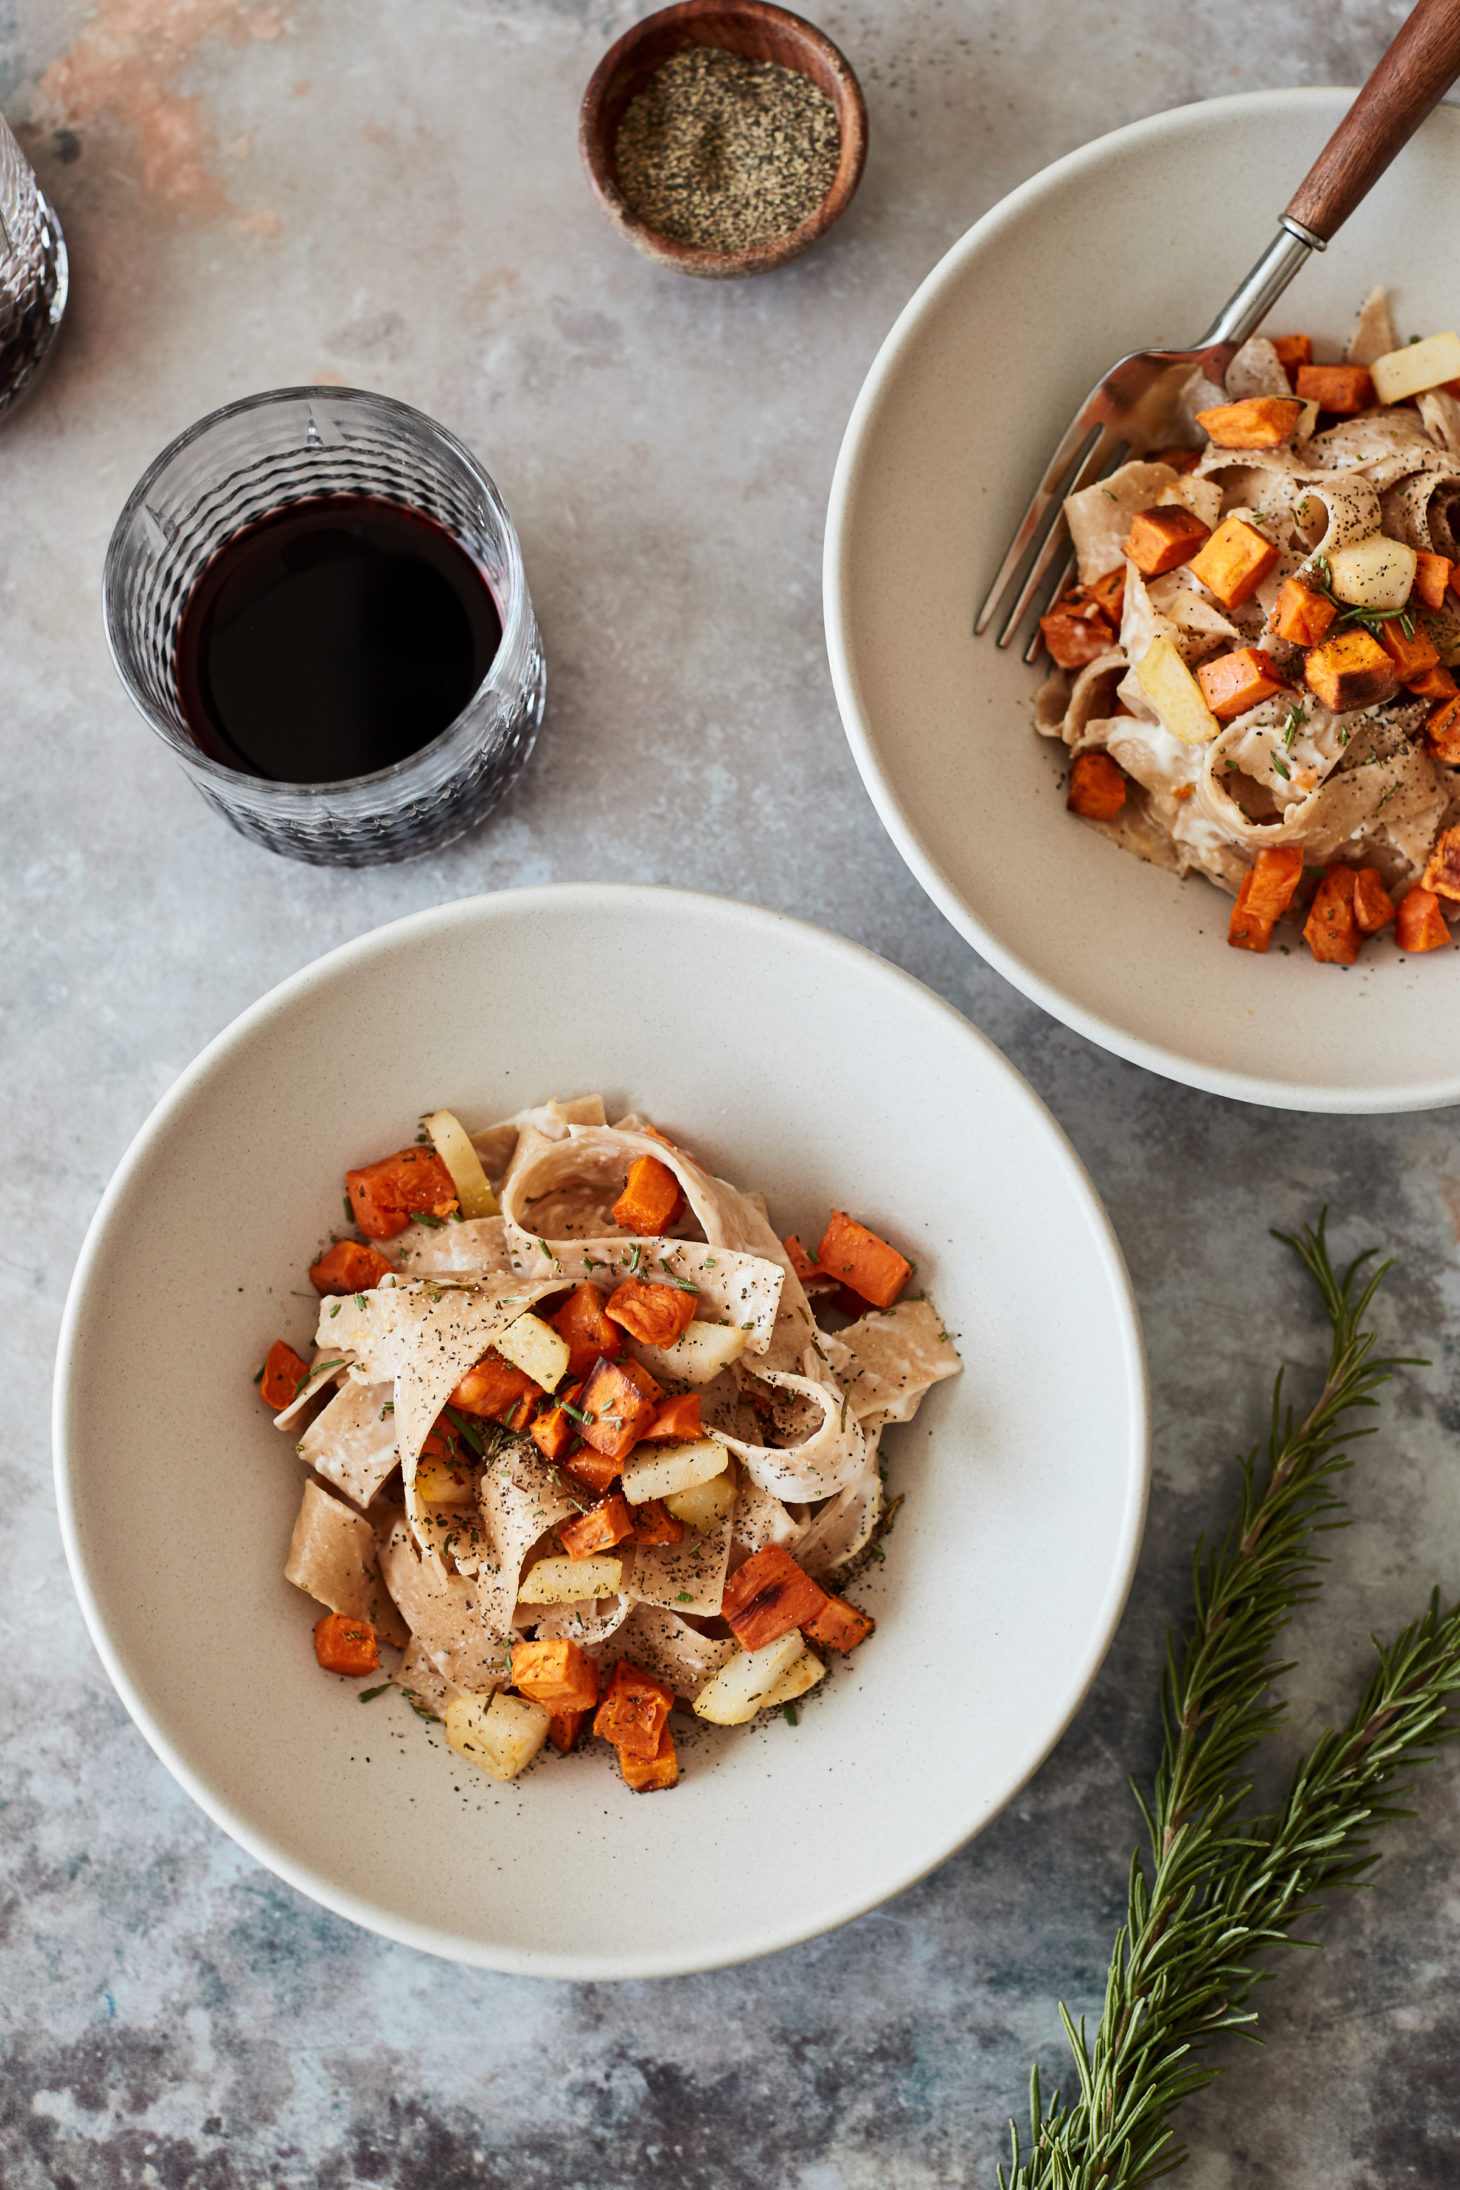 Image of two bowls of pasta with roasted orange sweet potato and a glass of red wine.